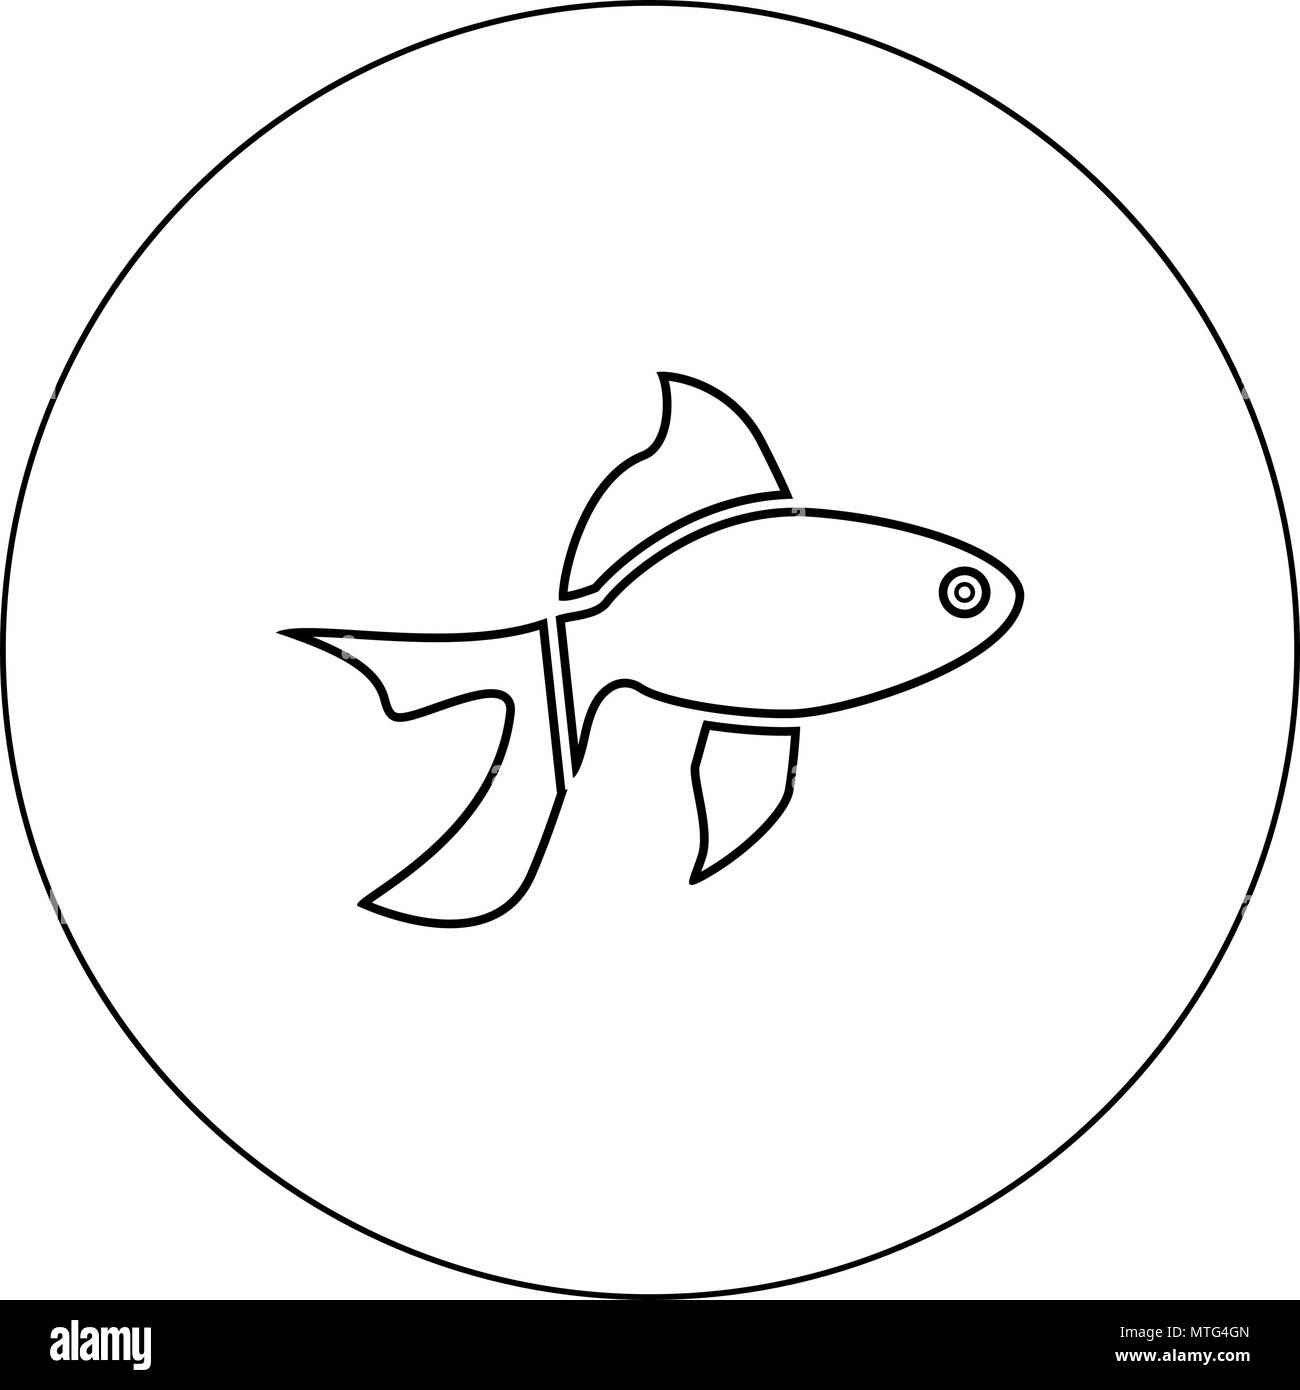 fish icon black color in circle vector illustration isolated outline stock image